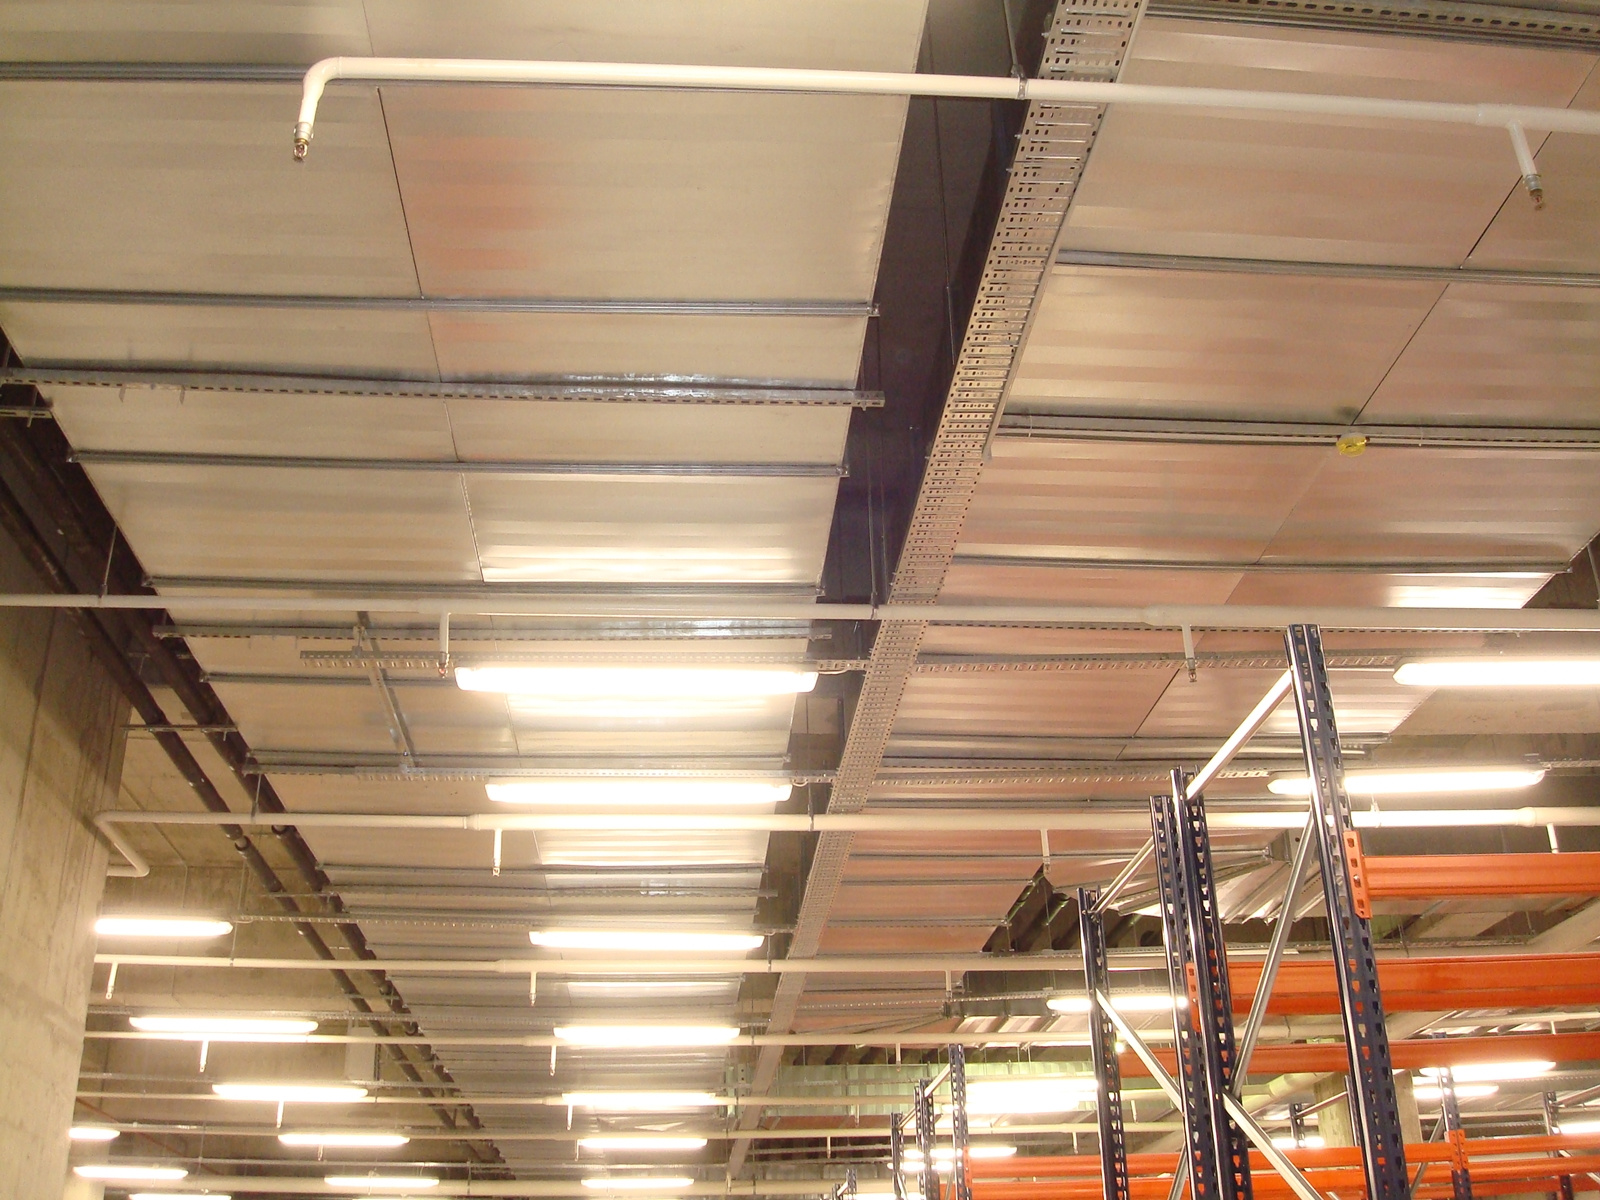 Fire fighting installations